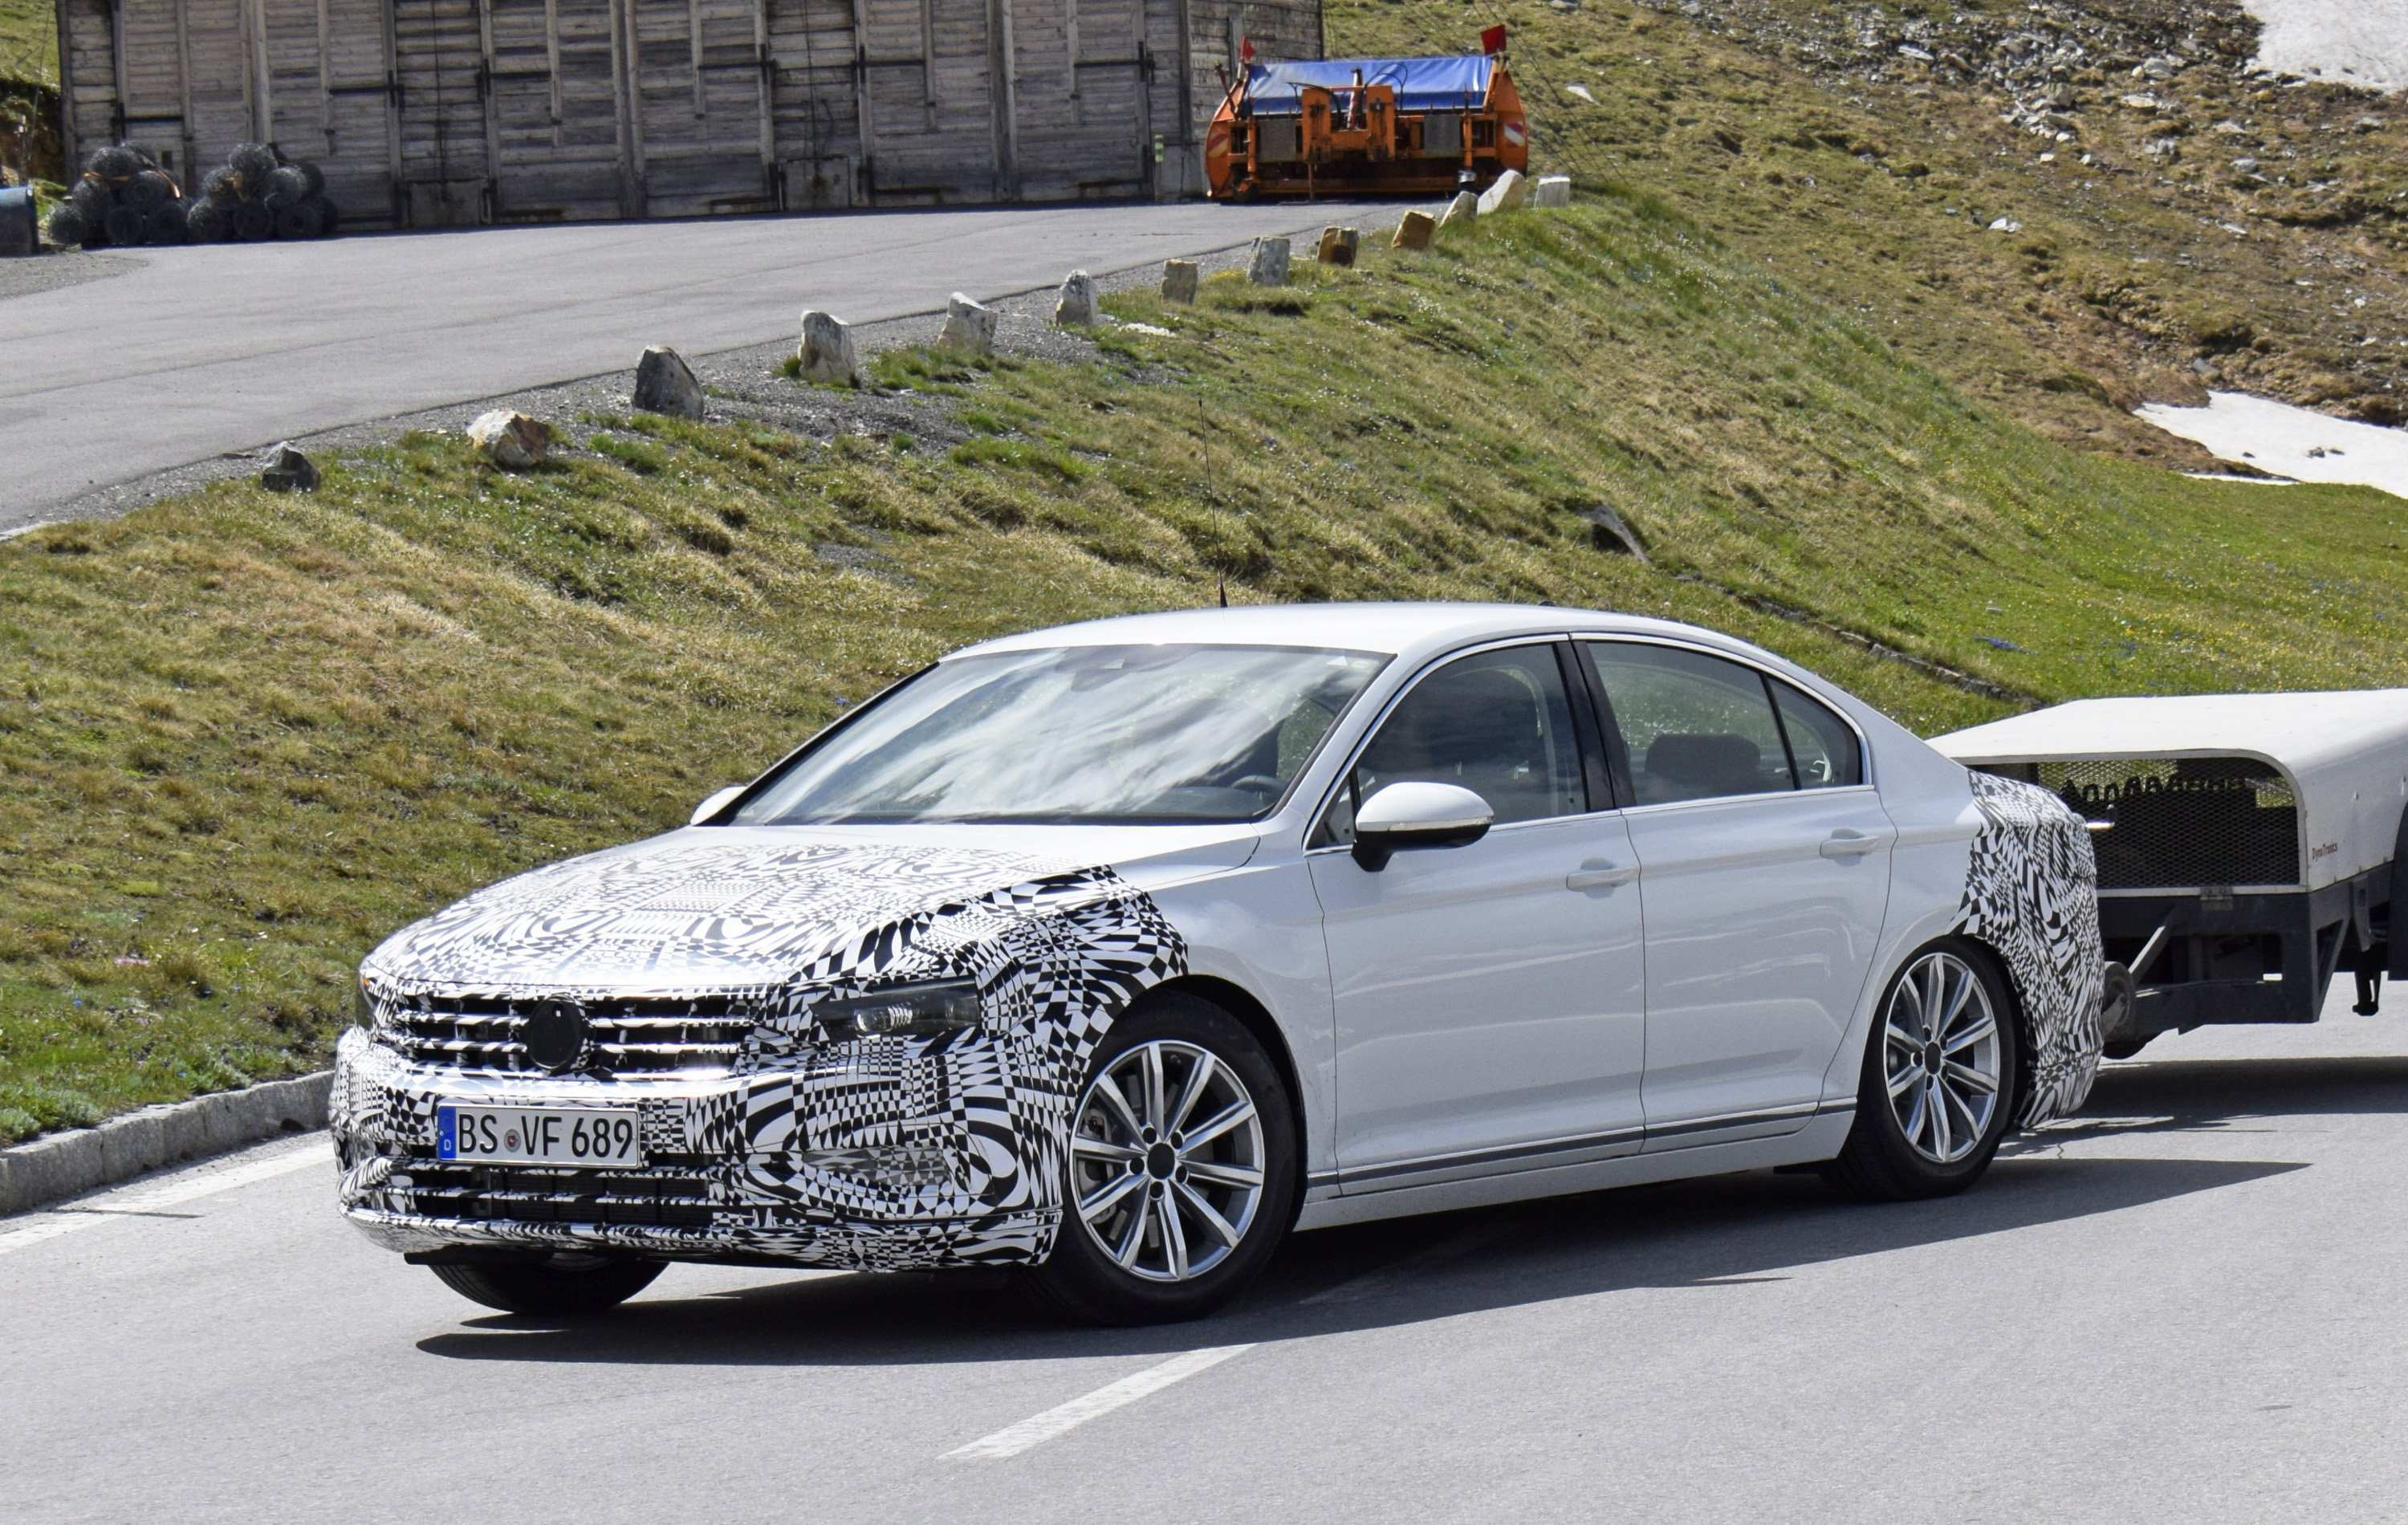 2020 The Next Generation VW Cc Interior